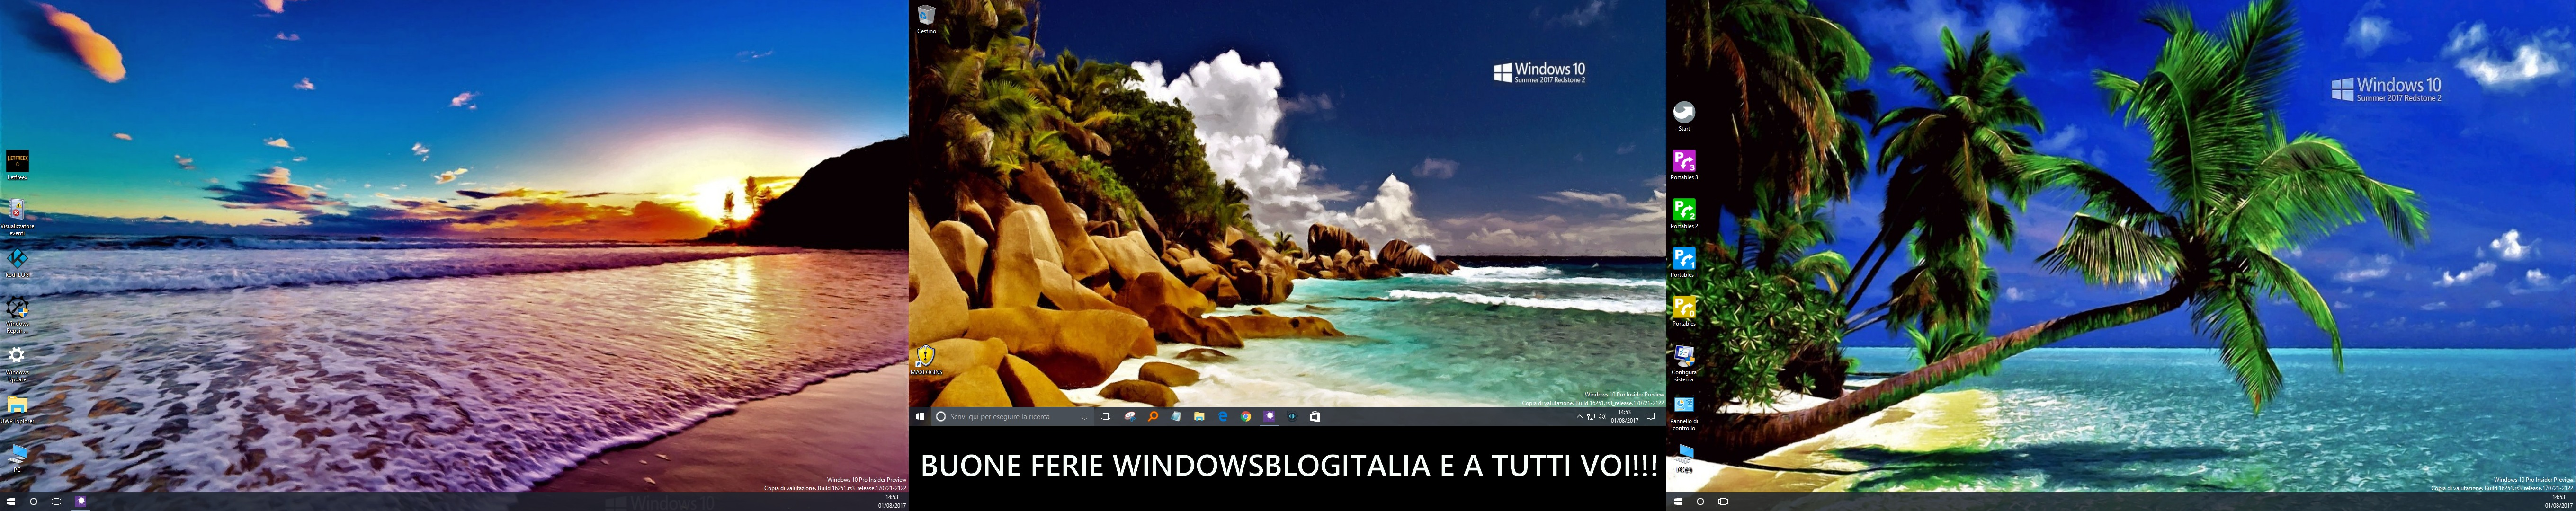 Buone ferie WindowsBlog.jpg